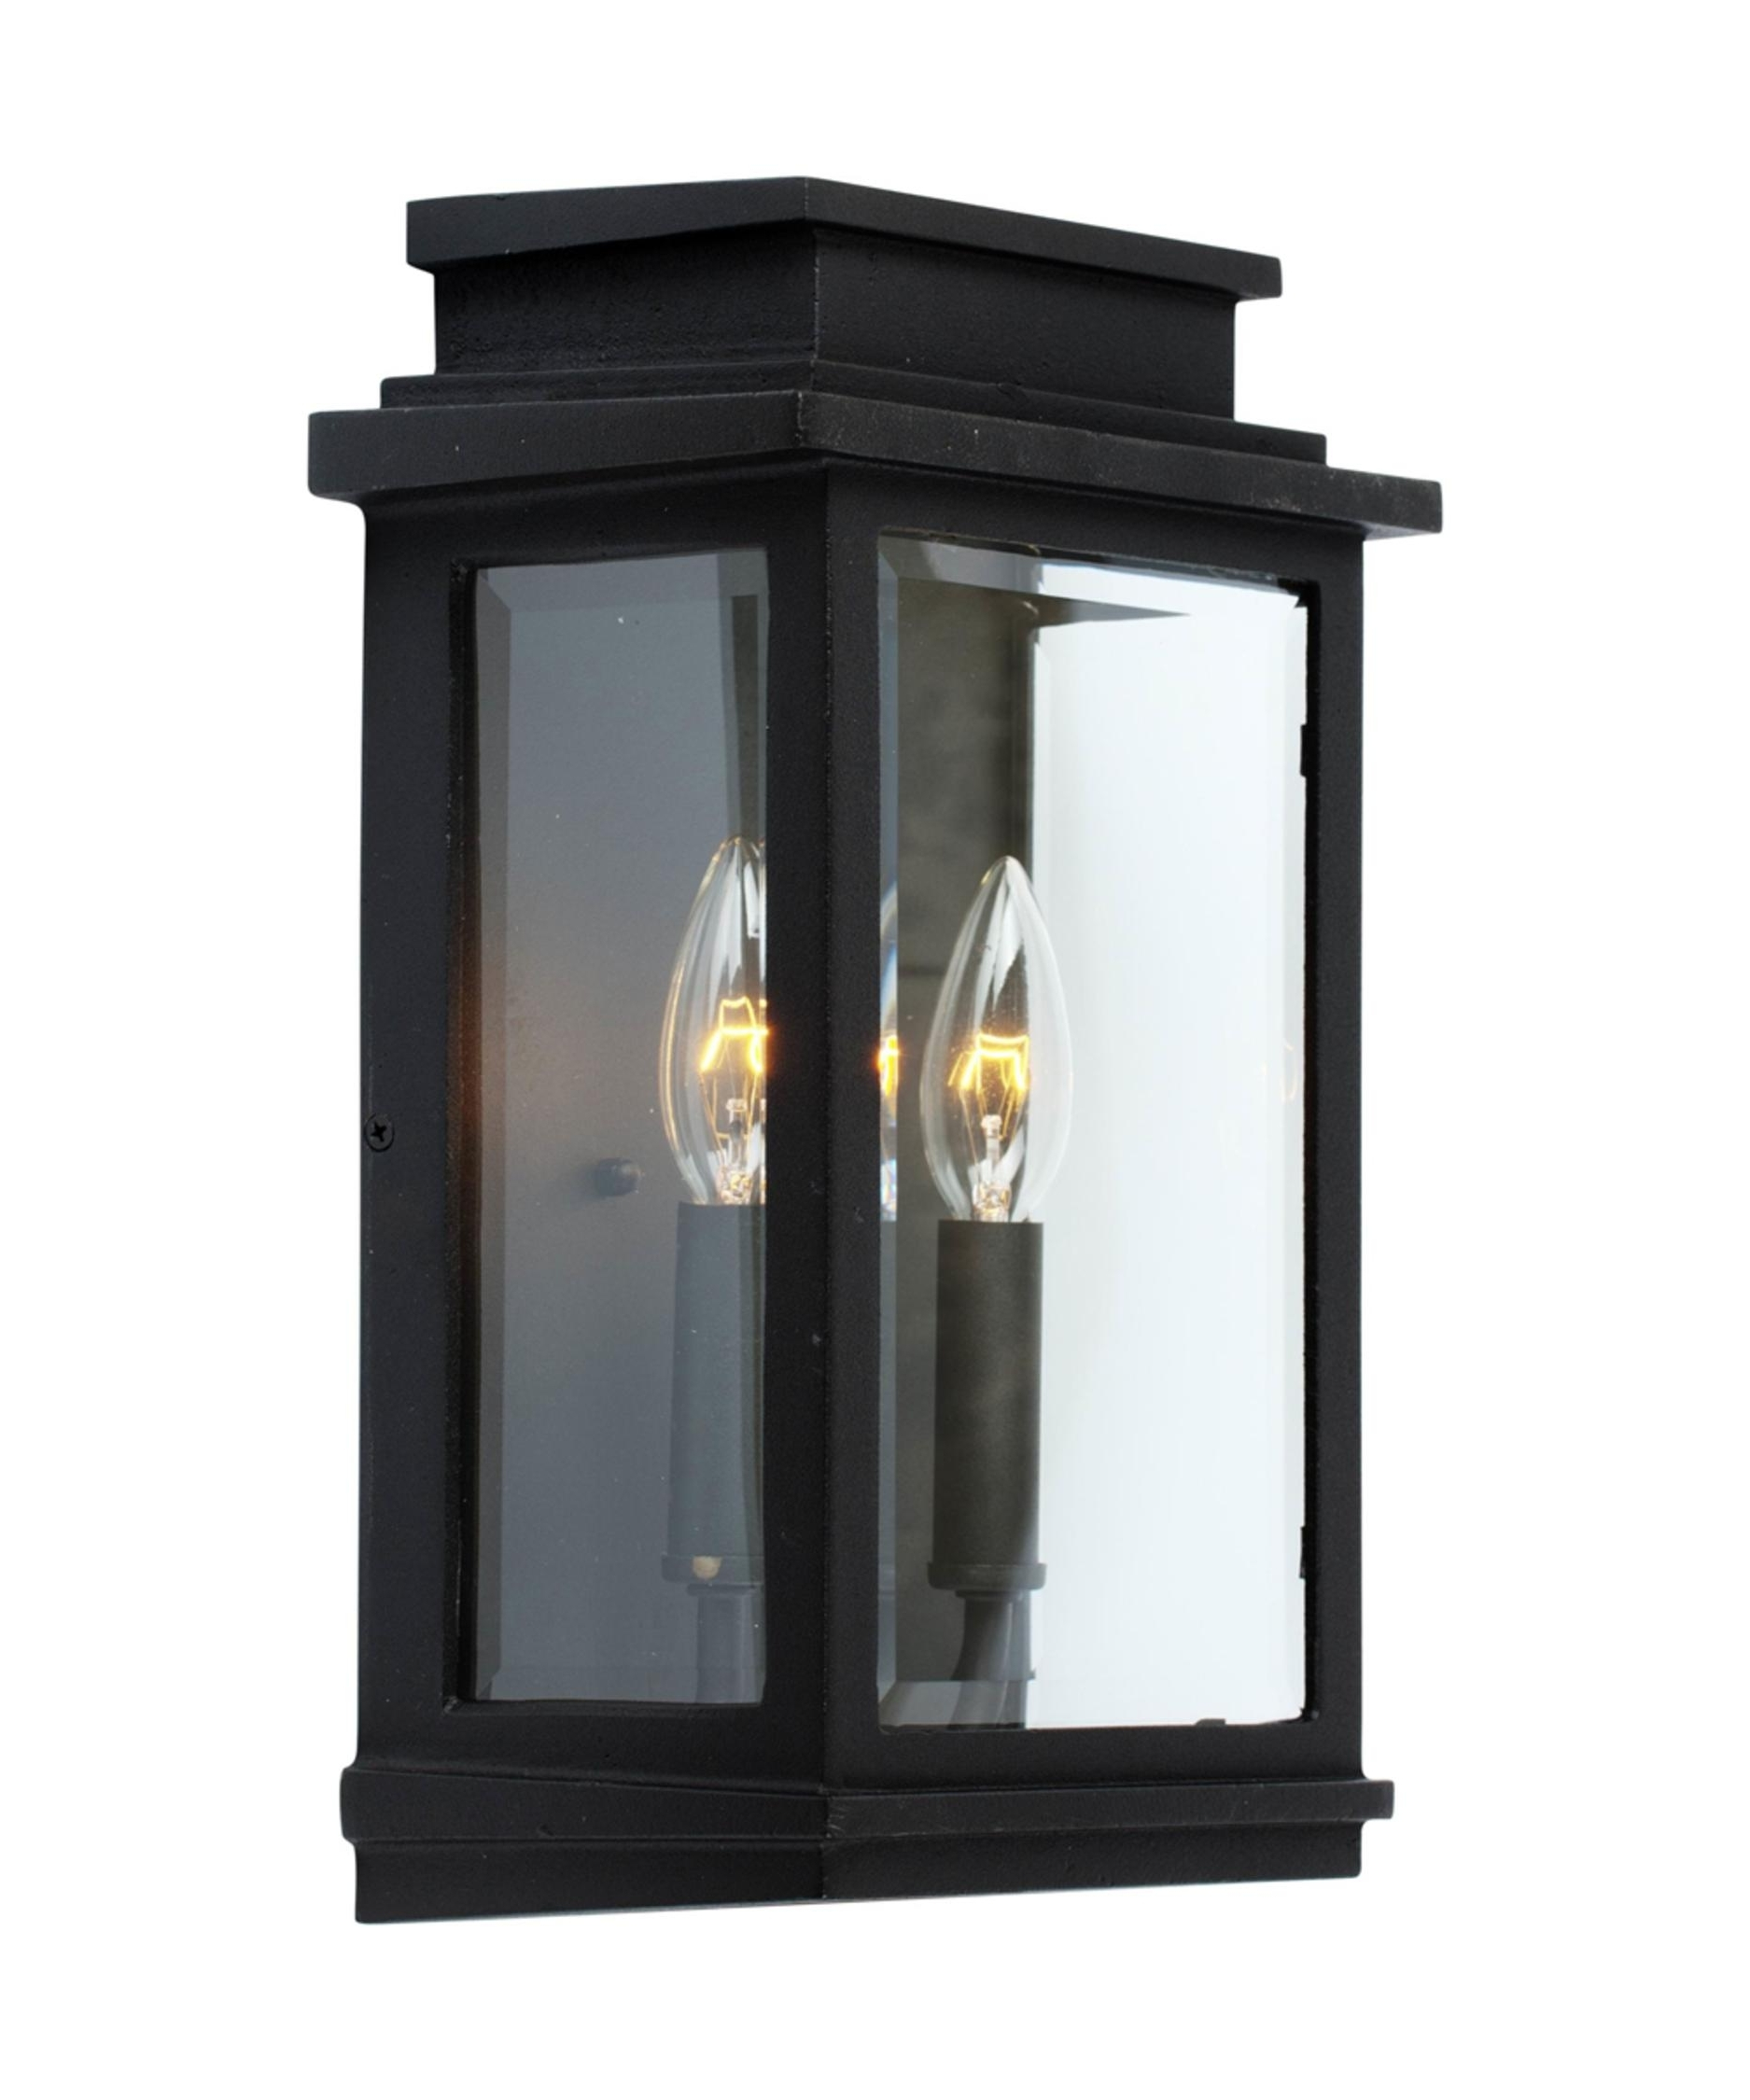 Trendy Black Outdoor Wall Lighting With Artcraft Ac8391 Fremont 9 Inch Wide 2 Light Outdoor Wall Light (View 9 of 20)